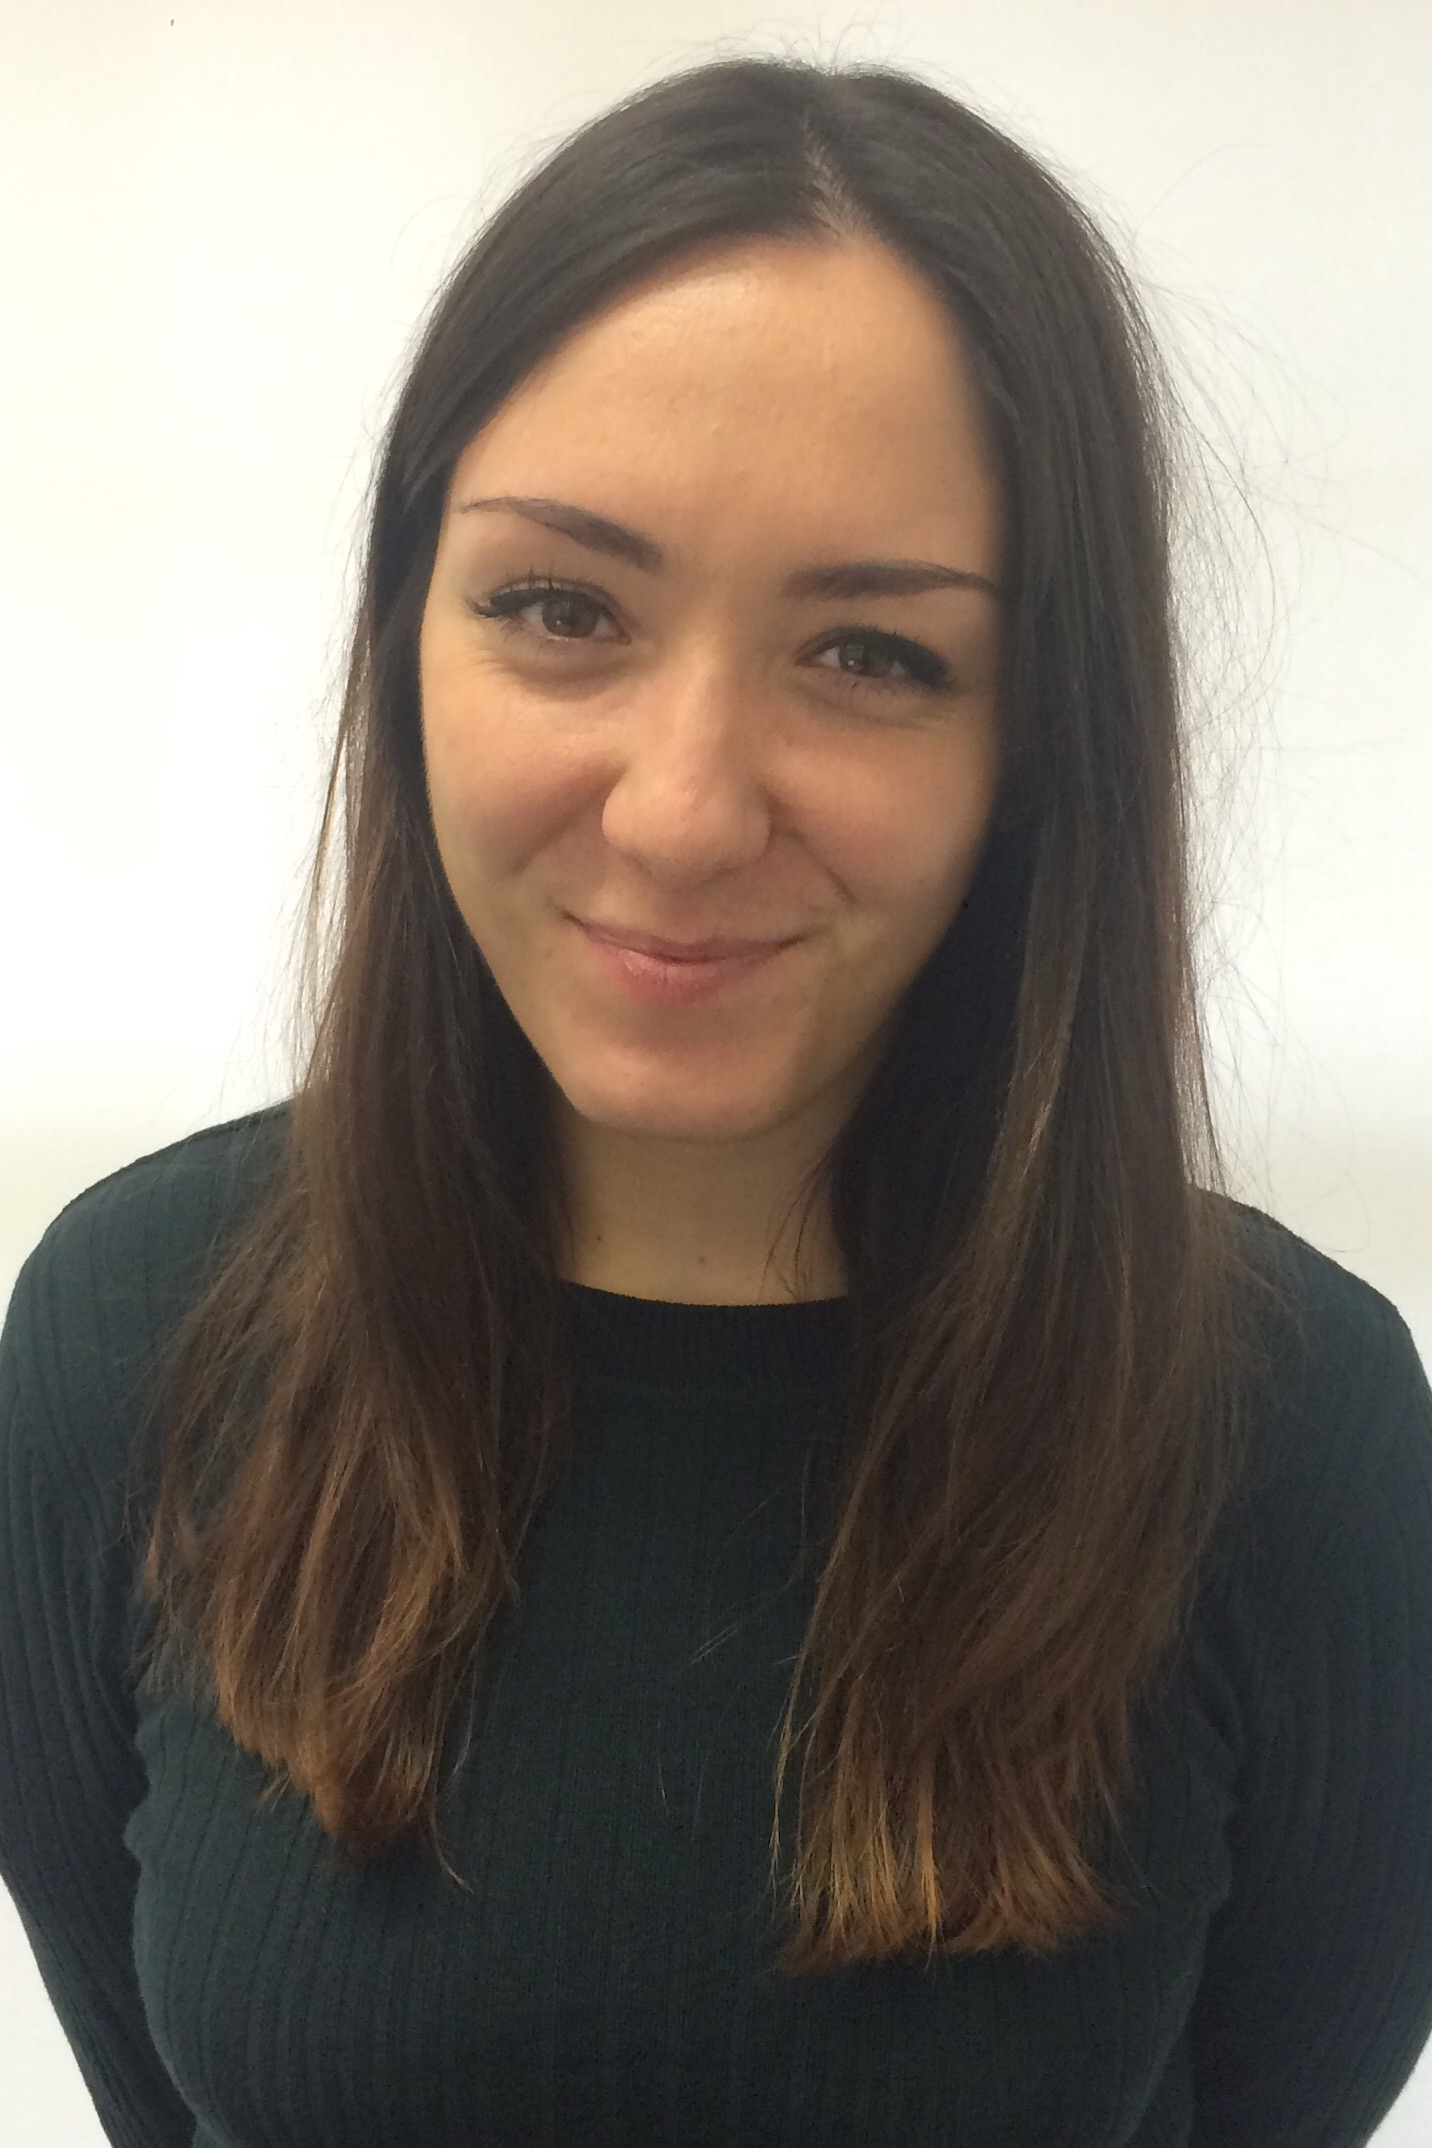 Roya ZeinaliLondon Assistant Director - Roya joined the EUSA London team in 2016. No stranger to travel, after completing her BA in History and Politics and Masters in Business Management (Marketing), Roya took a year off to travel and completed a ski season in France.